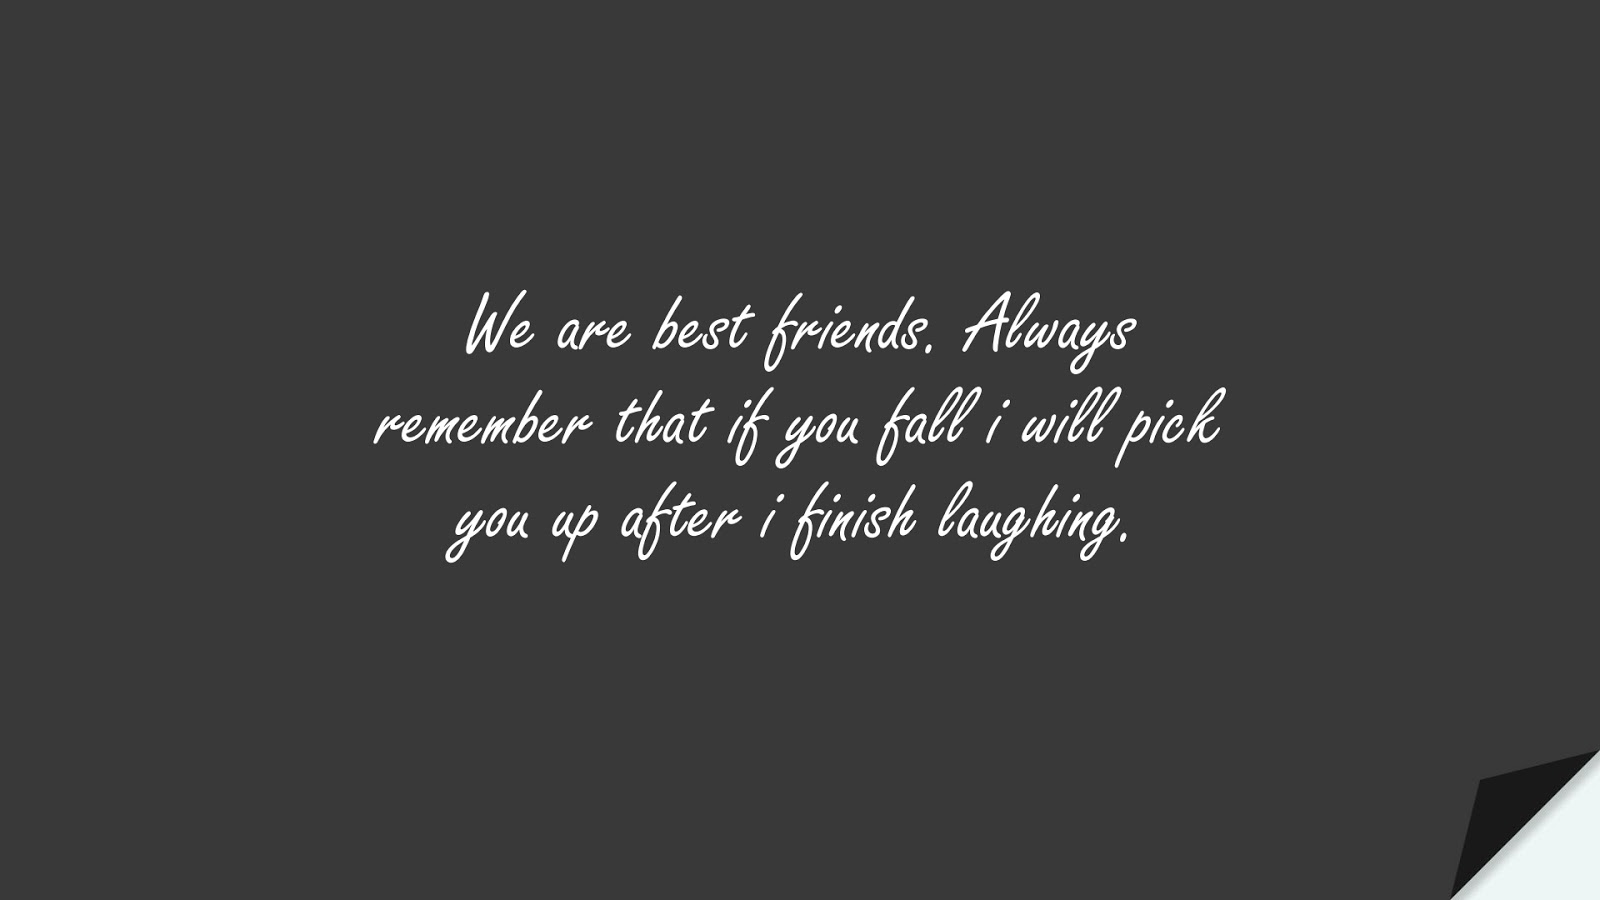 We are best friends. Always remember that if you fall i will pick you up after i finish laughing.FALSE